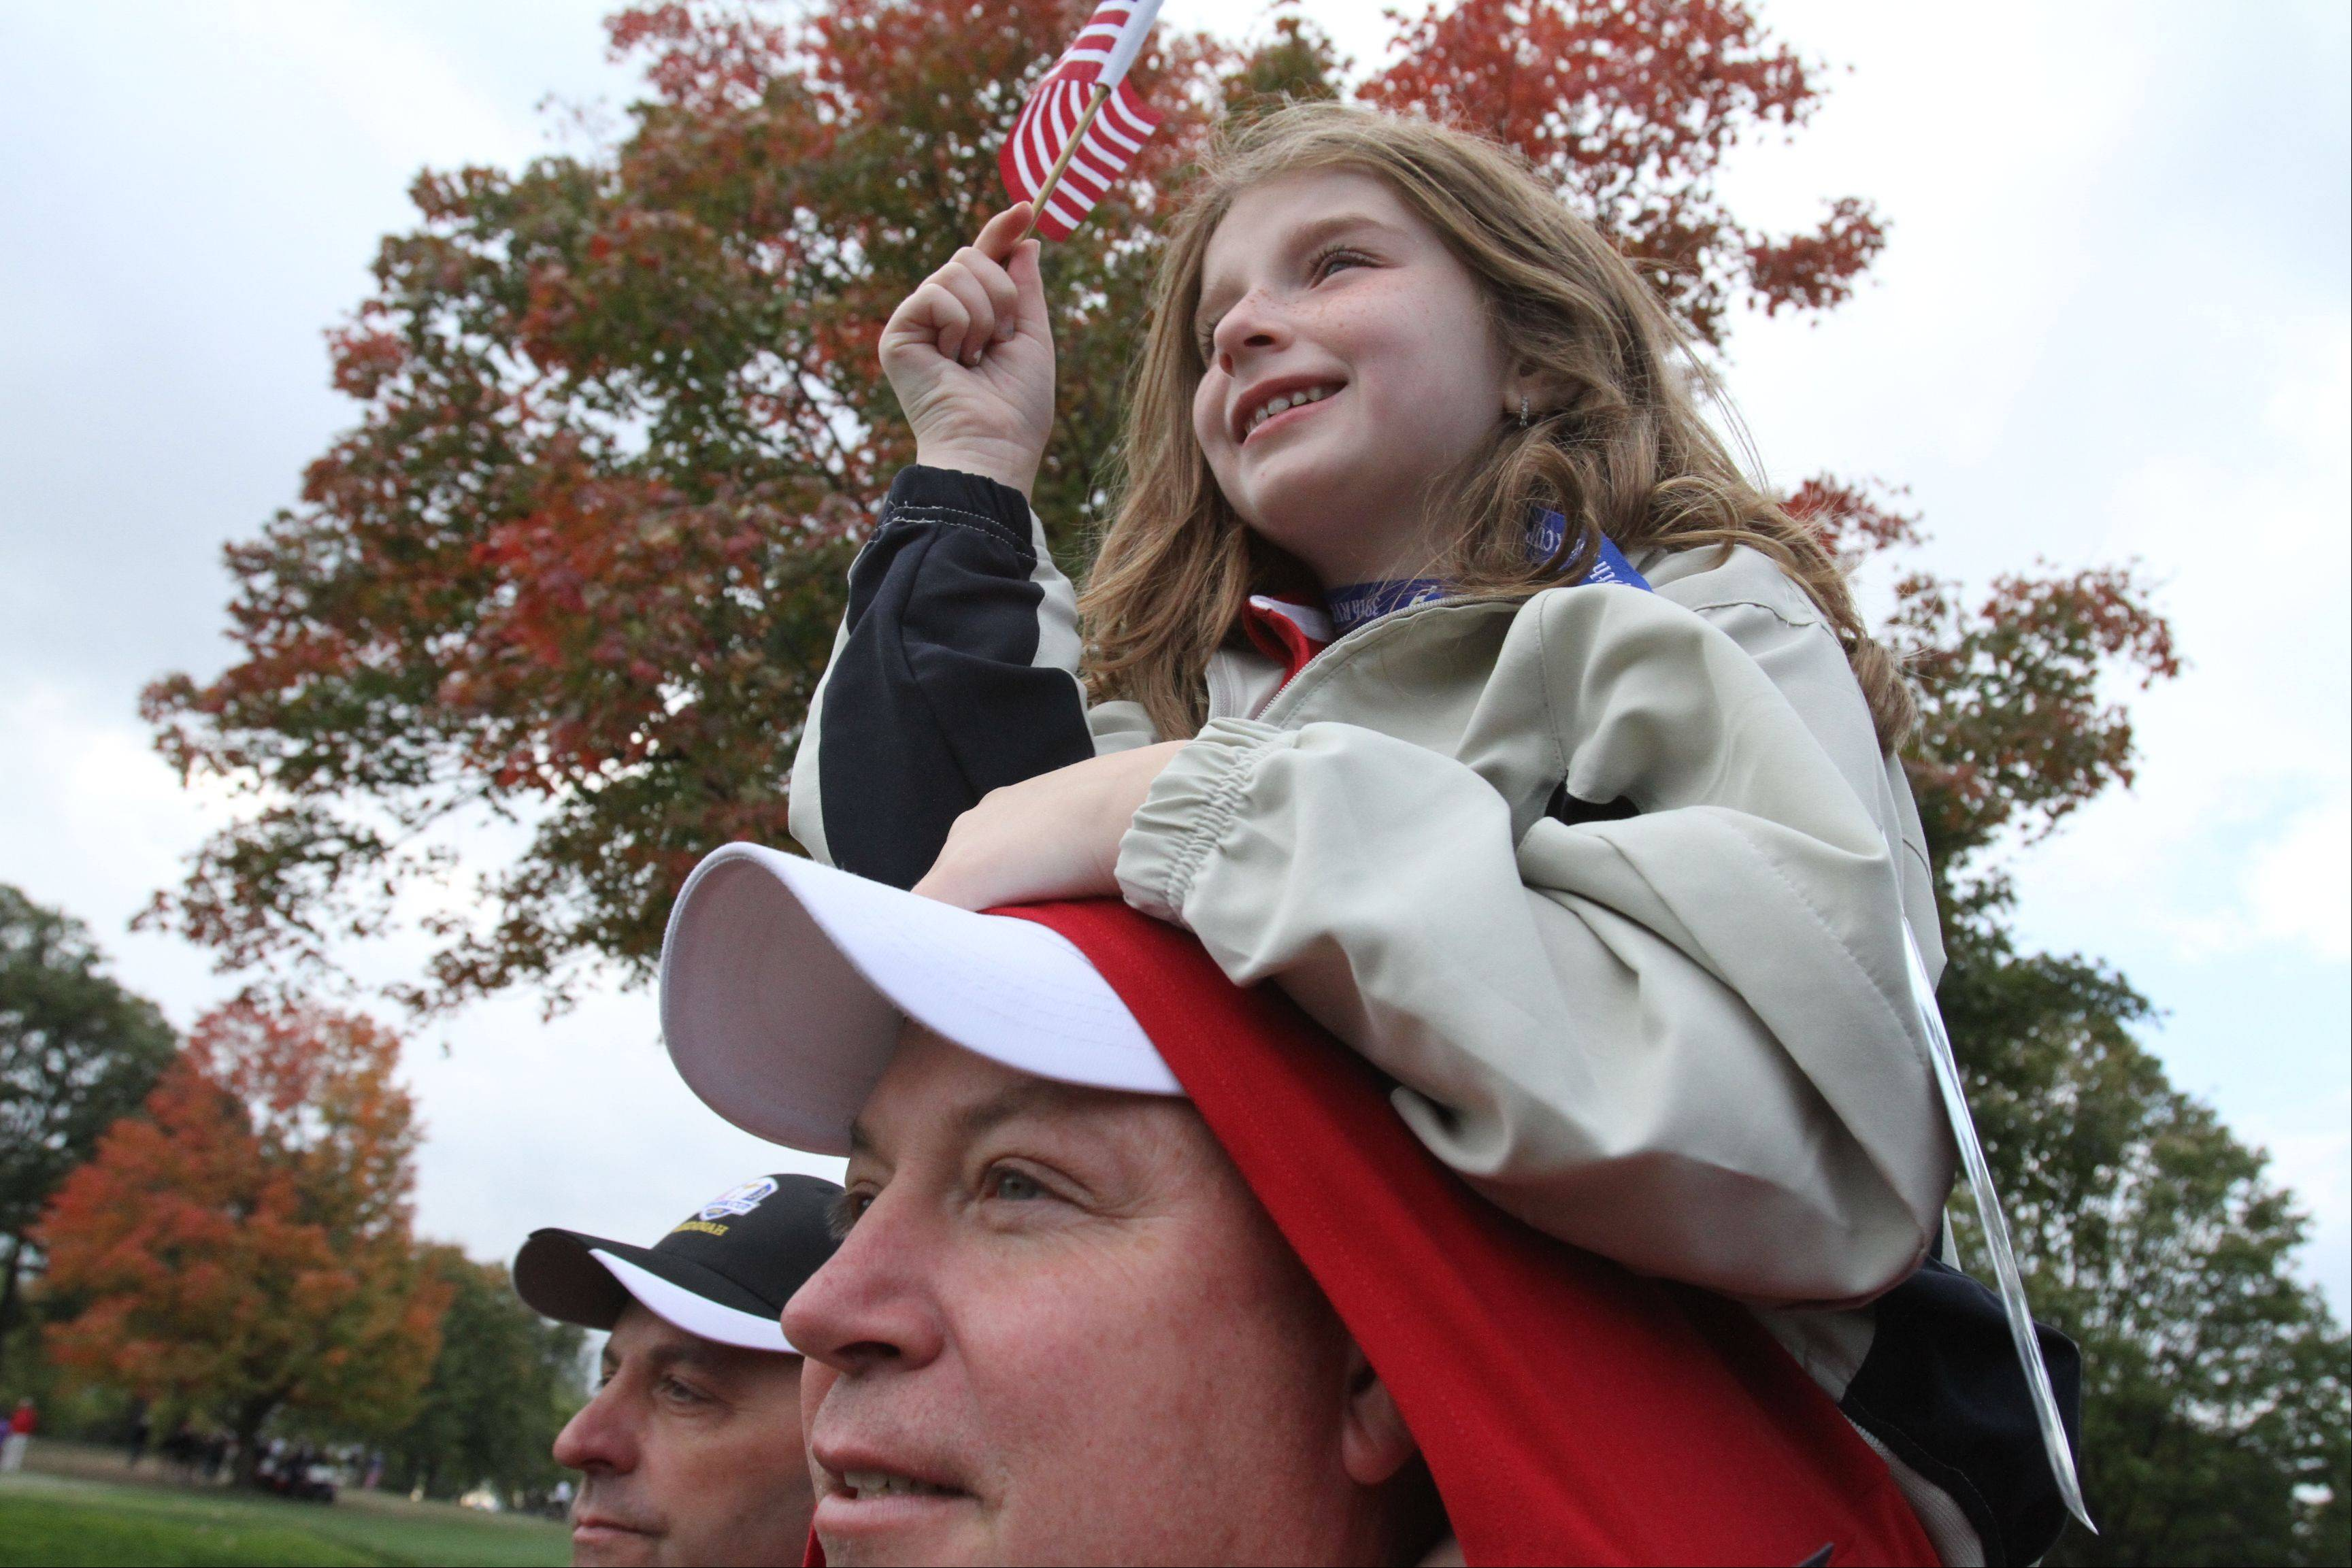 Mike Pinkowski, formerly of Glen Ellyn and now living in New York, holds his daughter Kelsey on his shoulders as they watch the Ryder Cup action Friday morning at Medinah Country Club.